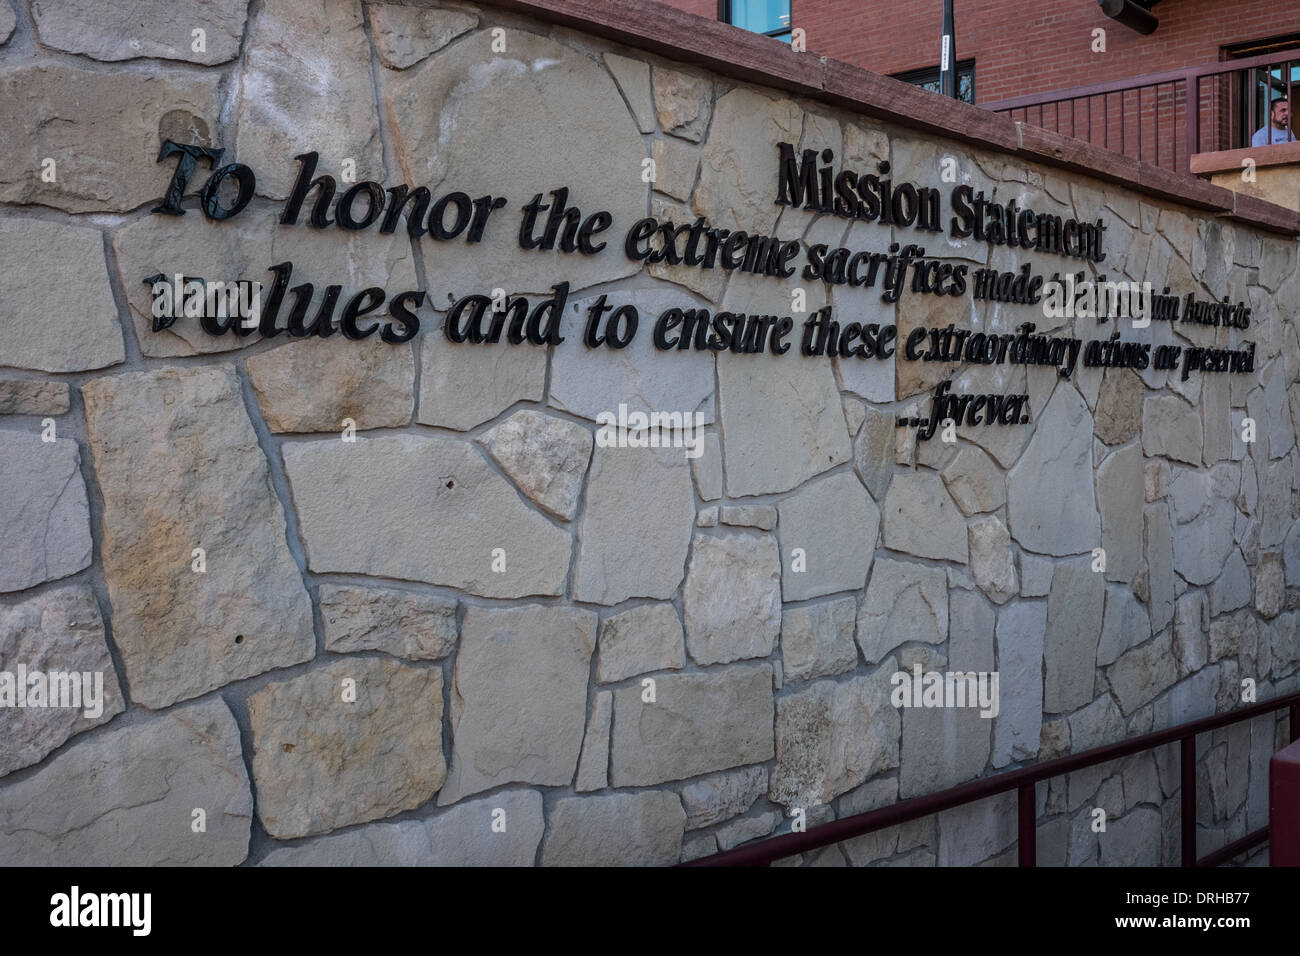 Mission statement for Center for American Values in Pueblo, Colorado. - Stock Image